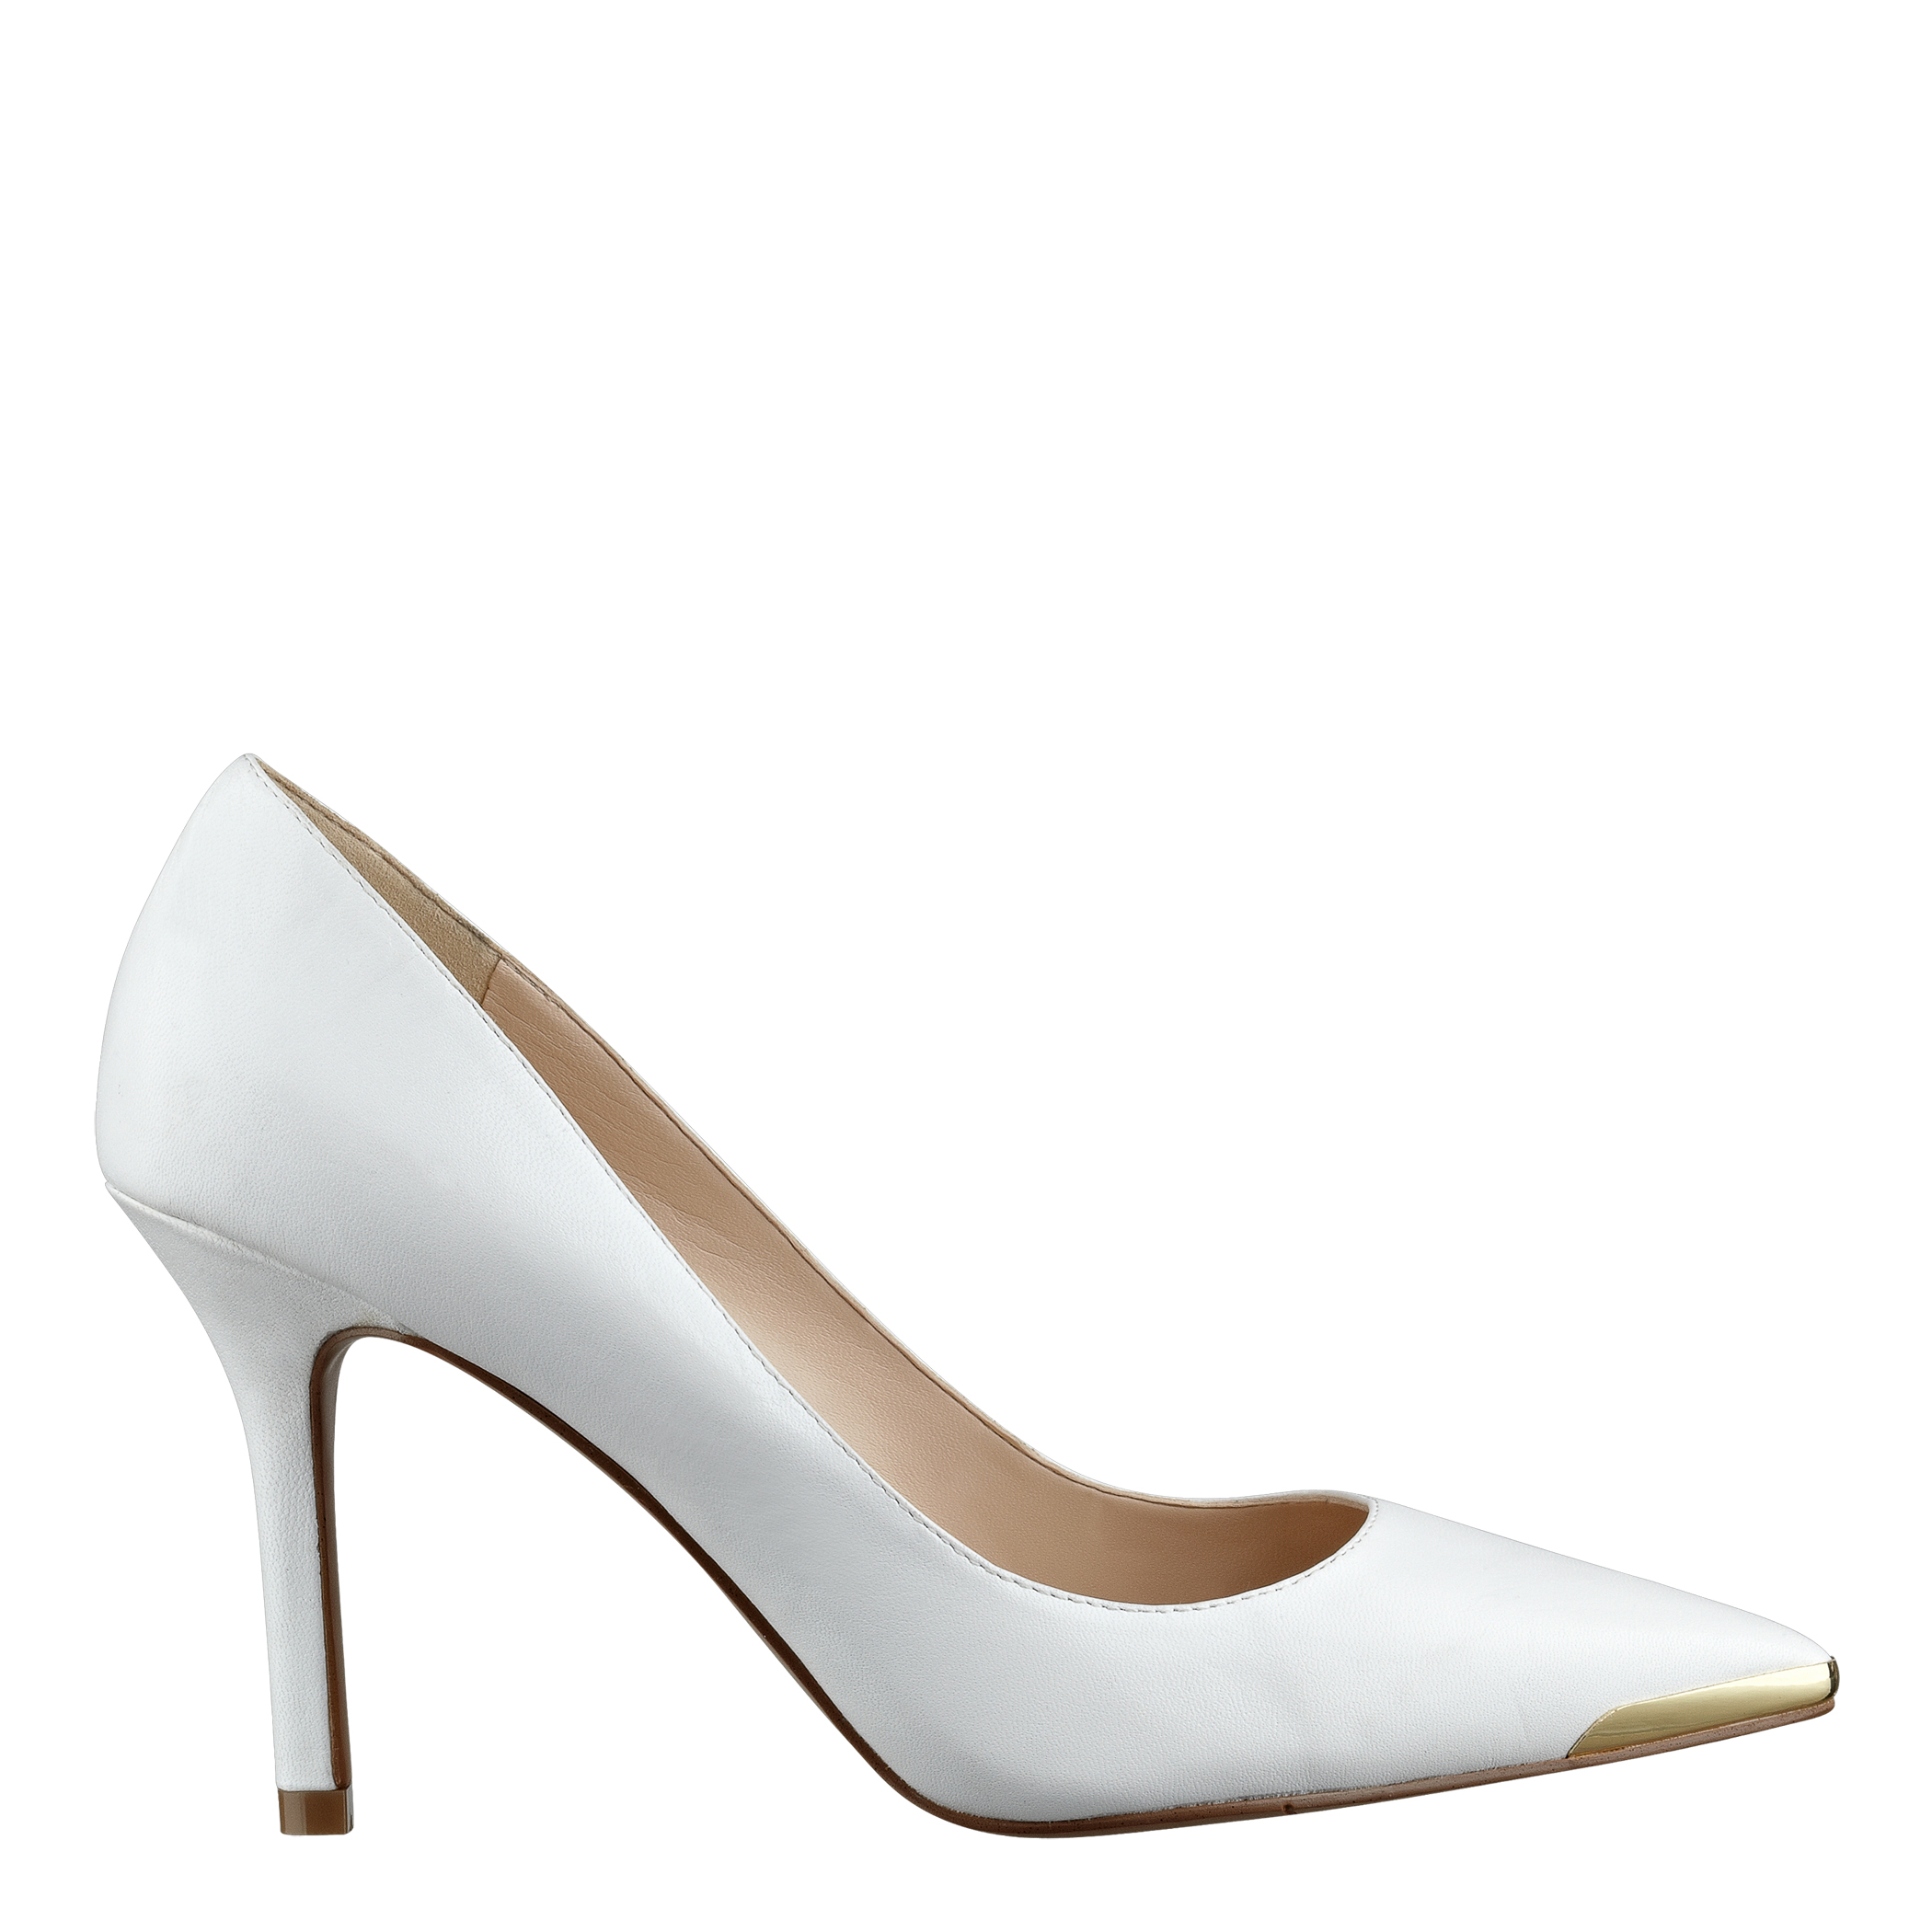 Lyst - Nine West Mastic Pointed Toe Pumps in White